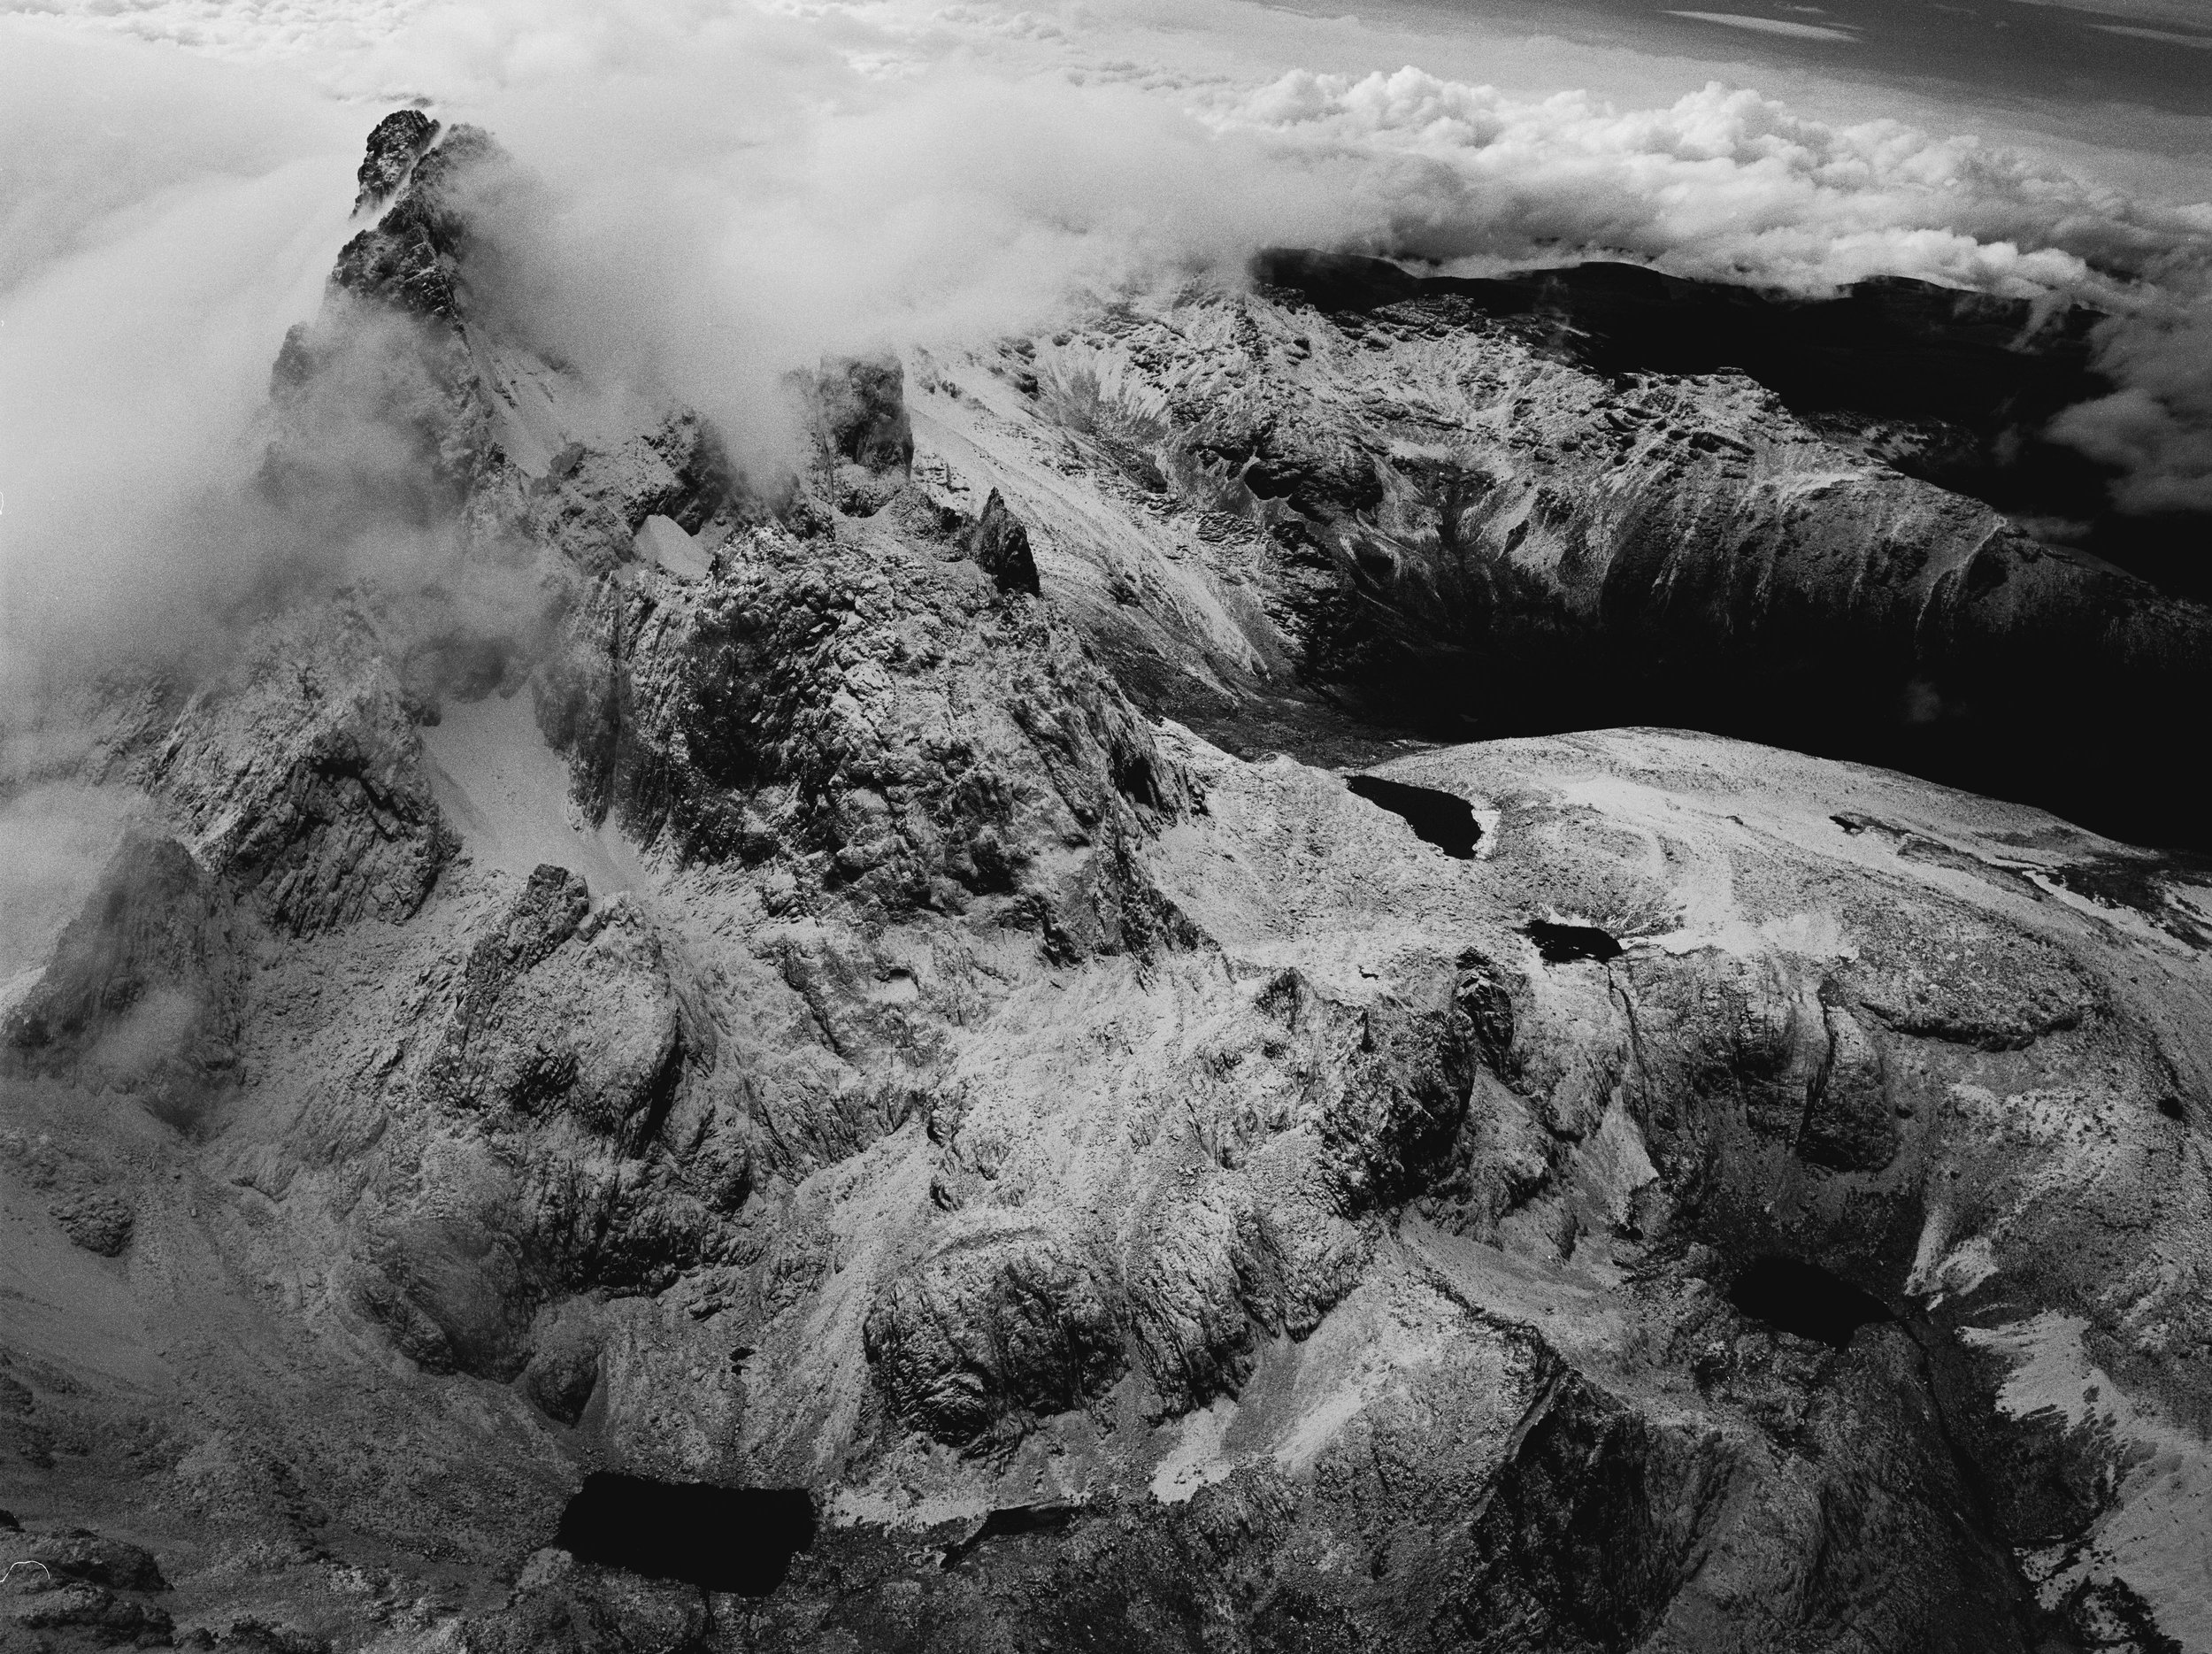 Africa's majestic second highest peak, contains the remnants of fast disappearing snowfields, Mount Kenya, 2004 © Alex Majoli Magnum Photos